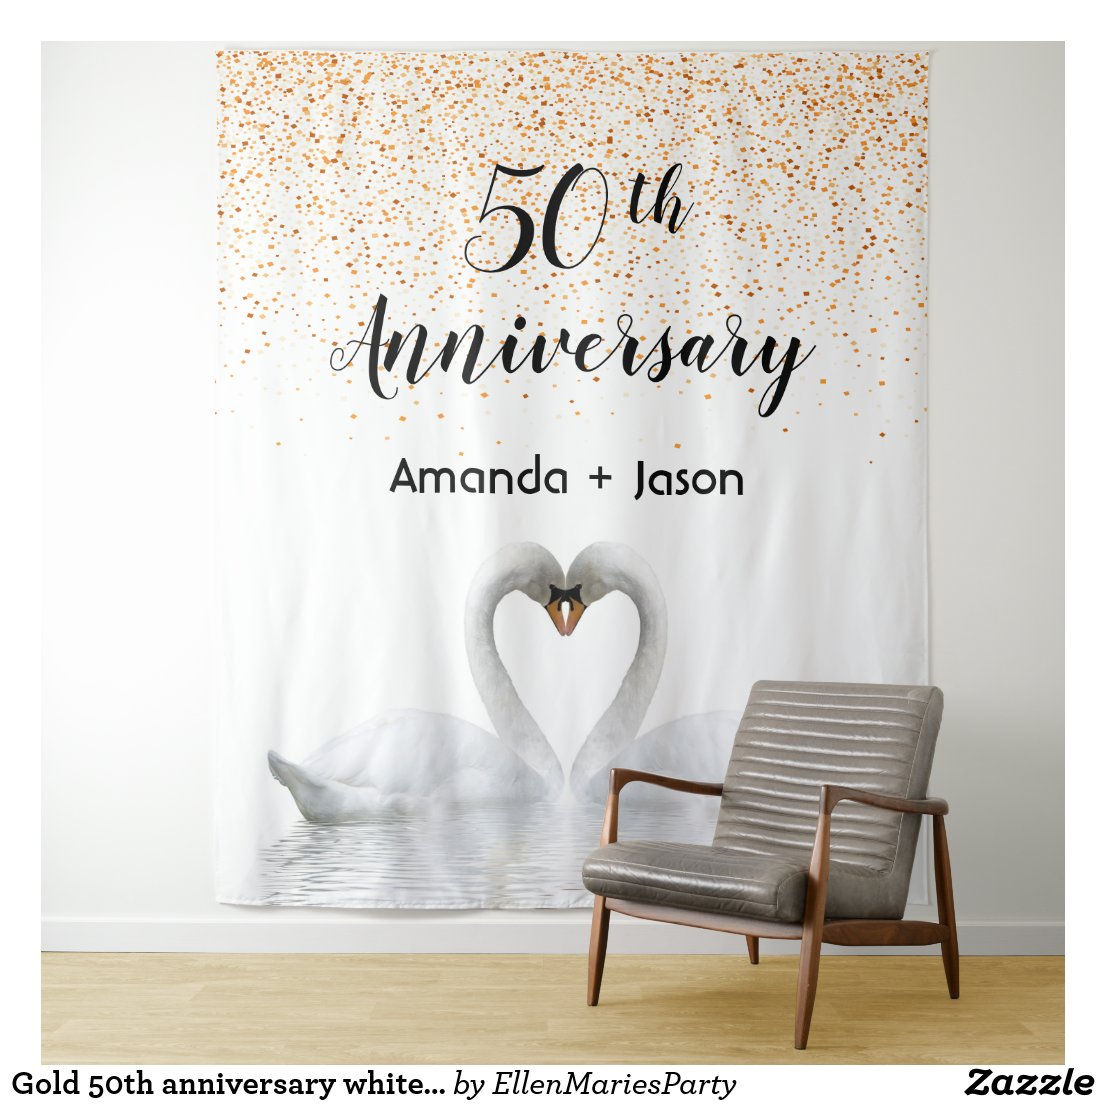 Gold 50th anniversary white swans in love tapestry